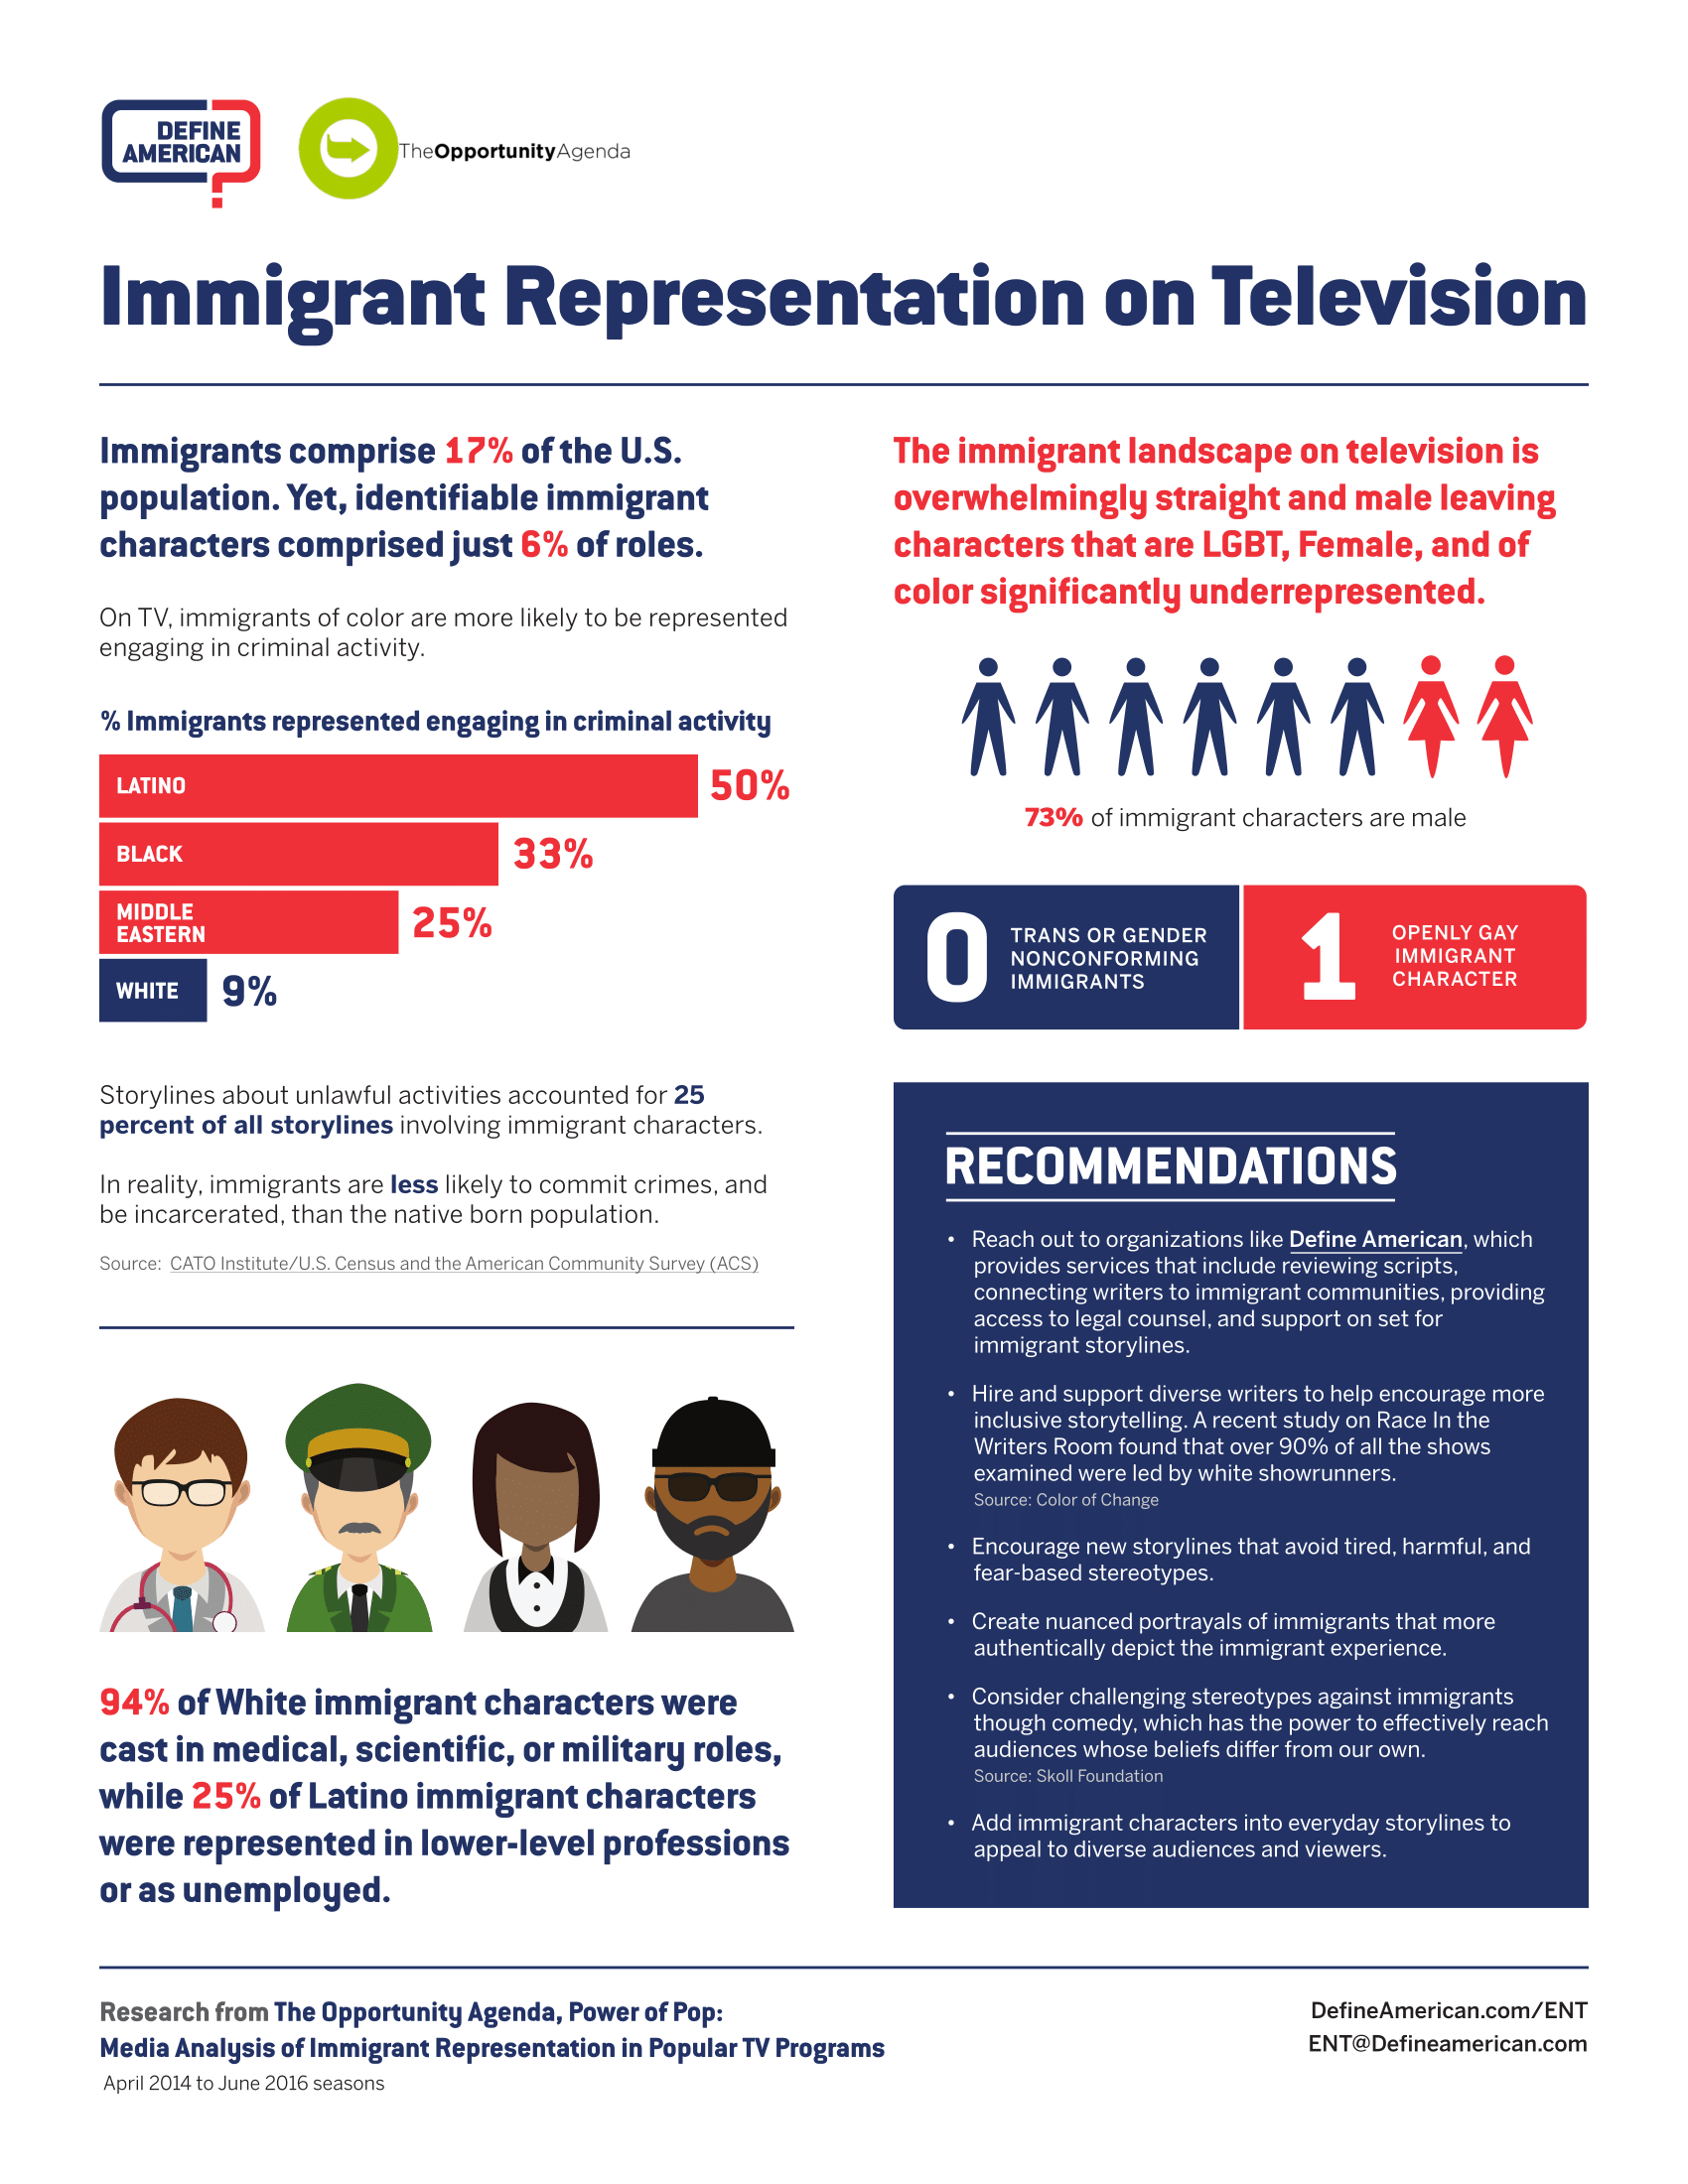 A fact sheet based on the Power of Pop report about the lack of representation and negative portrayals of immigrants of color on television  in collaboration with The Opportunity Agenda and Define America